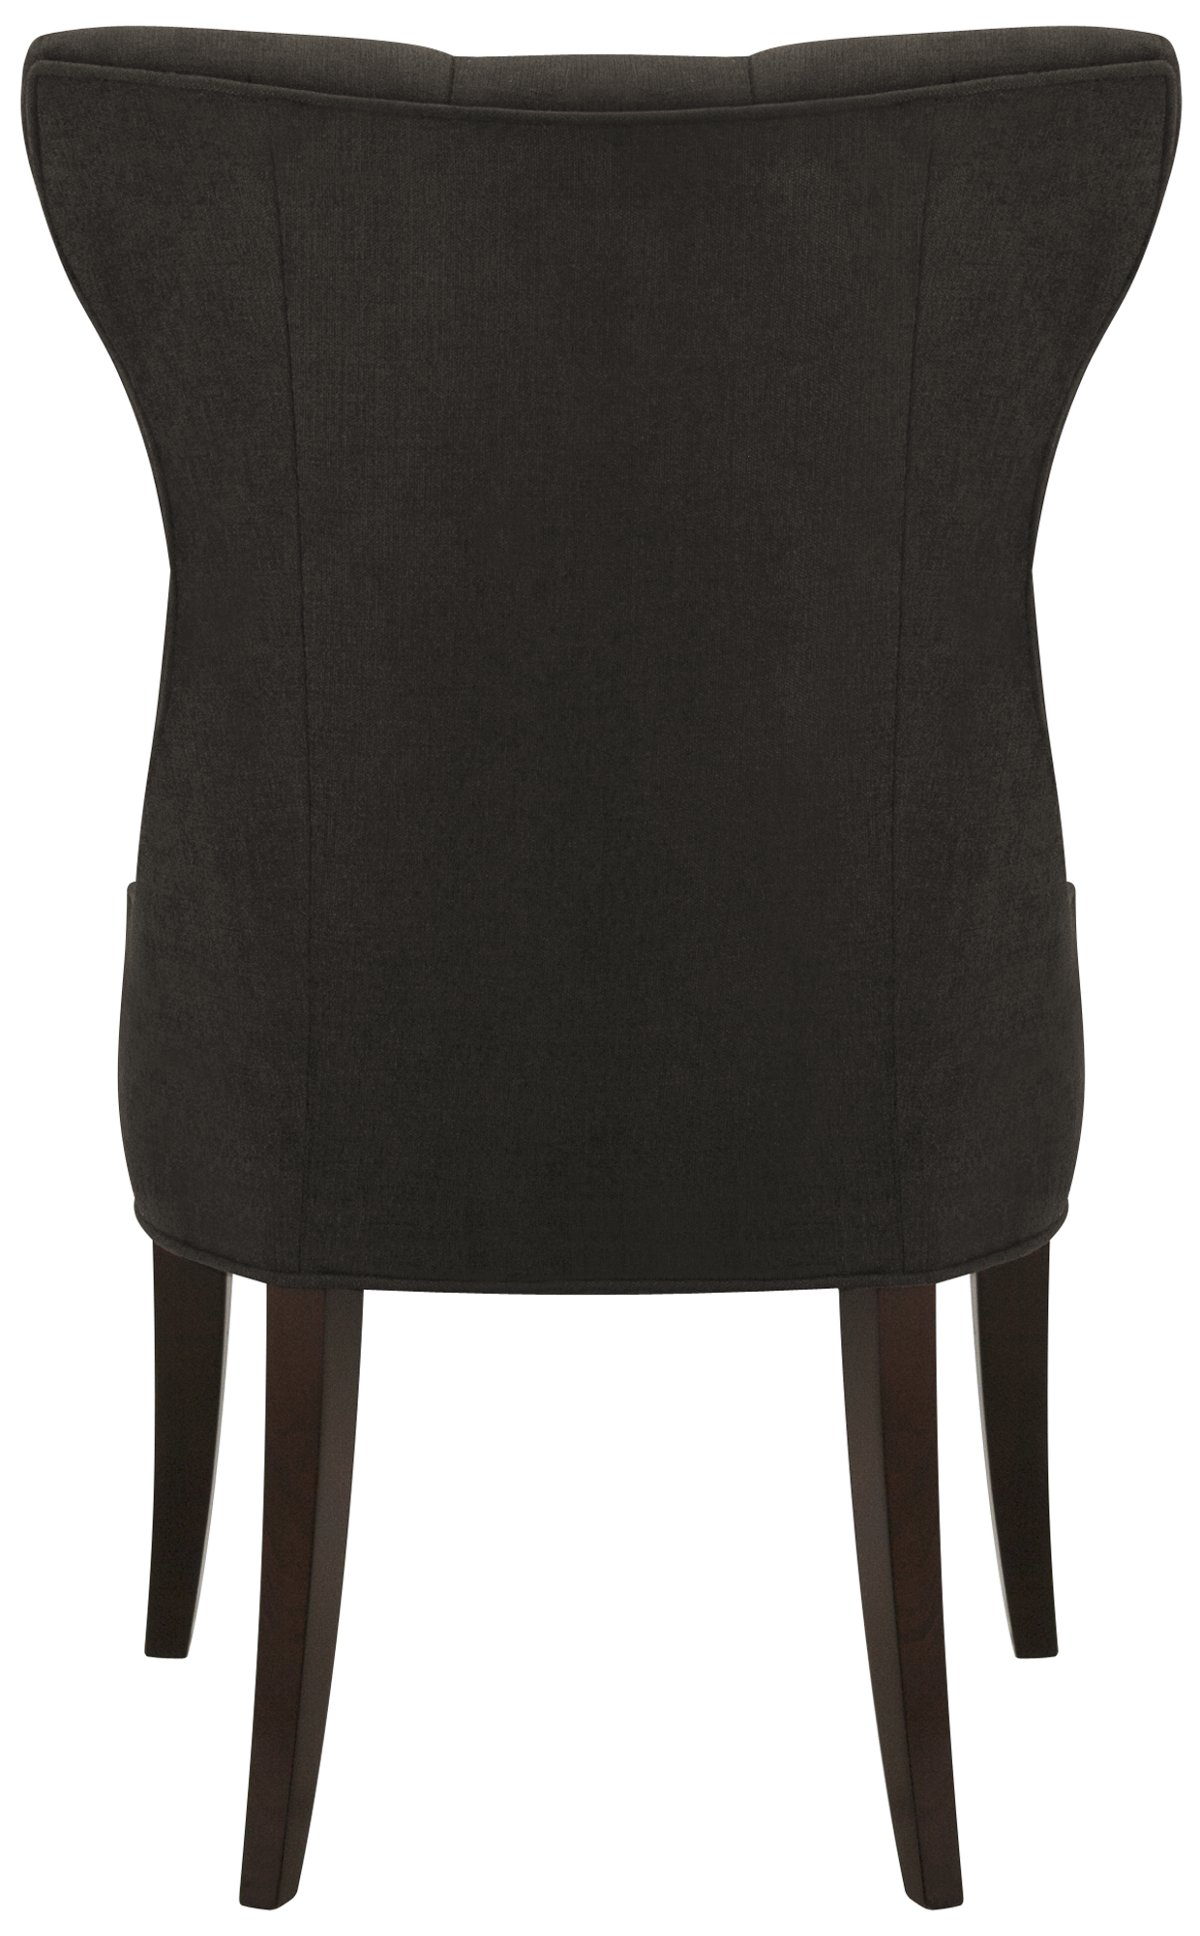 City Furniture Deco Dk Gray Upholstered Side Chair